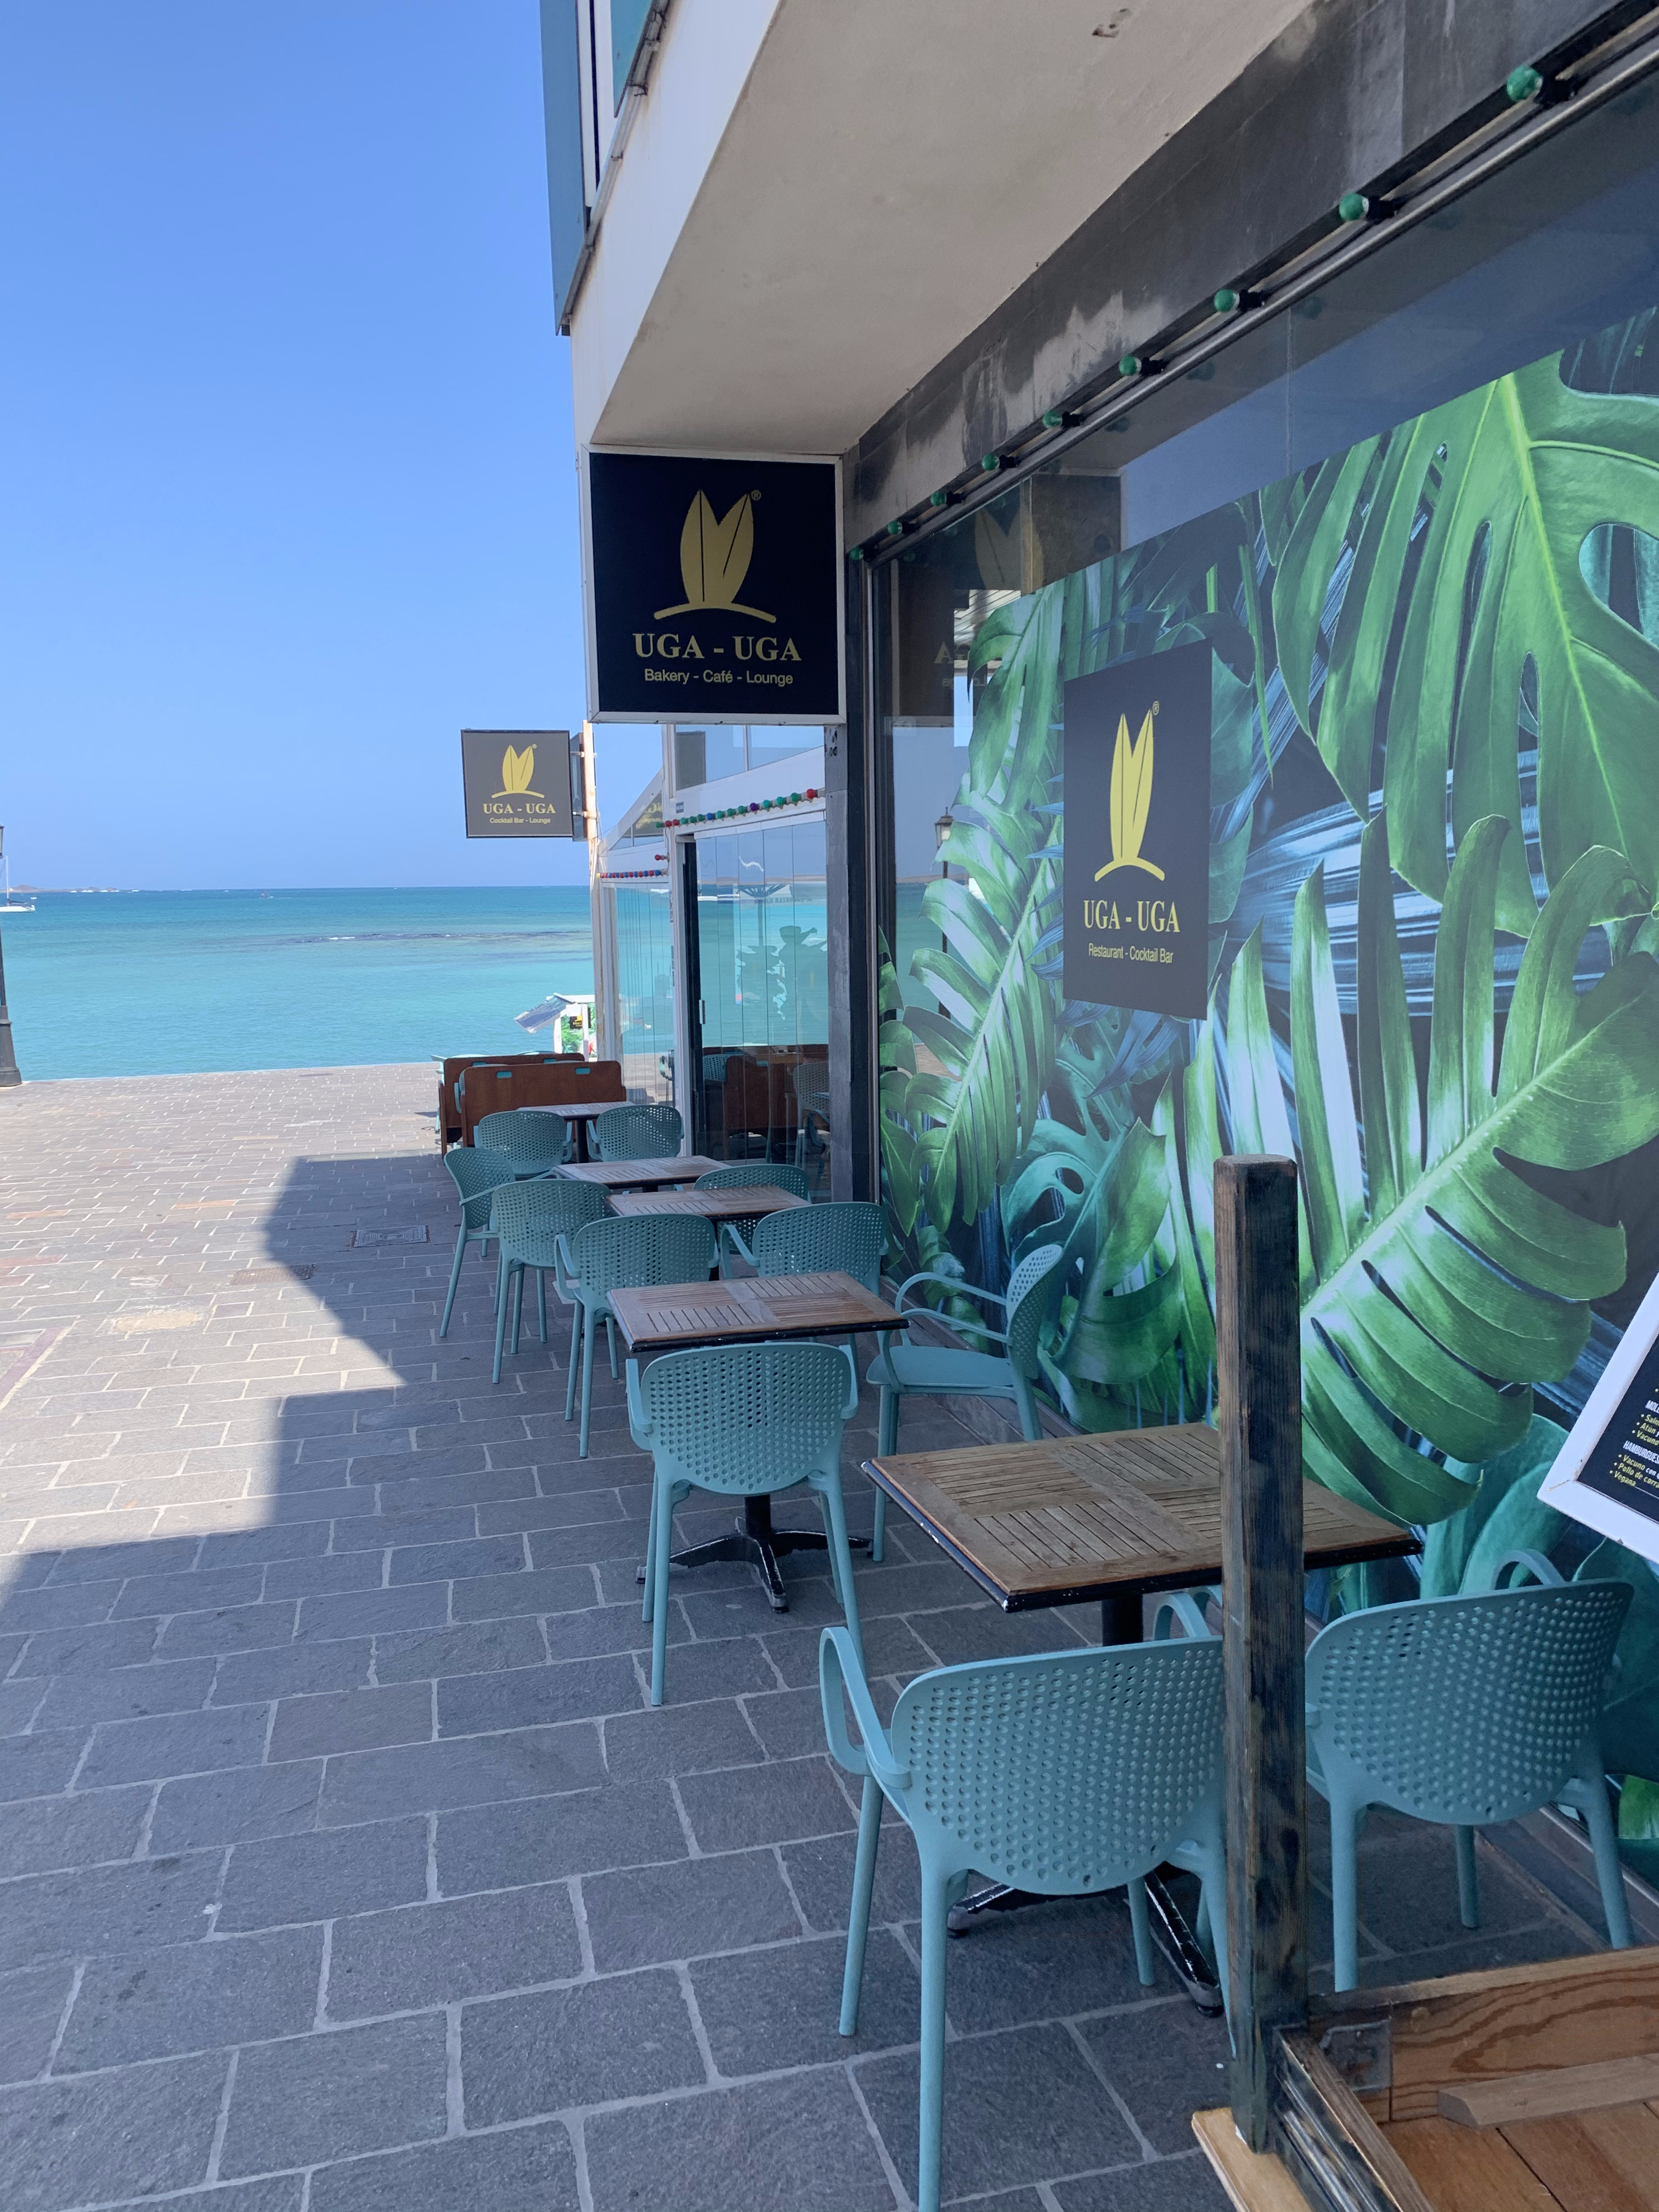 Sea side restaurant with outdoor seating and sea views in Corralejo in Fuerteventura